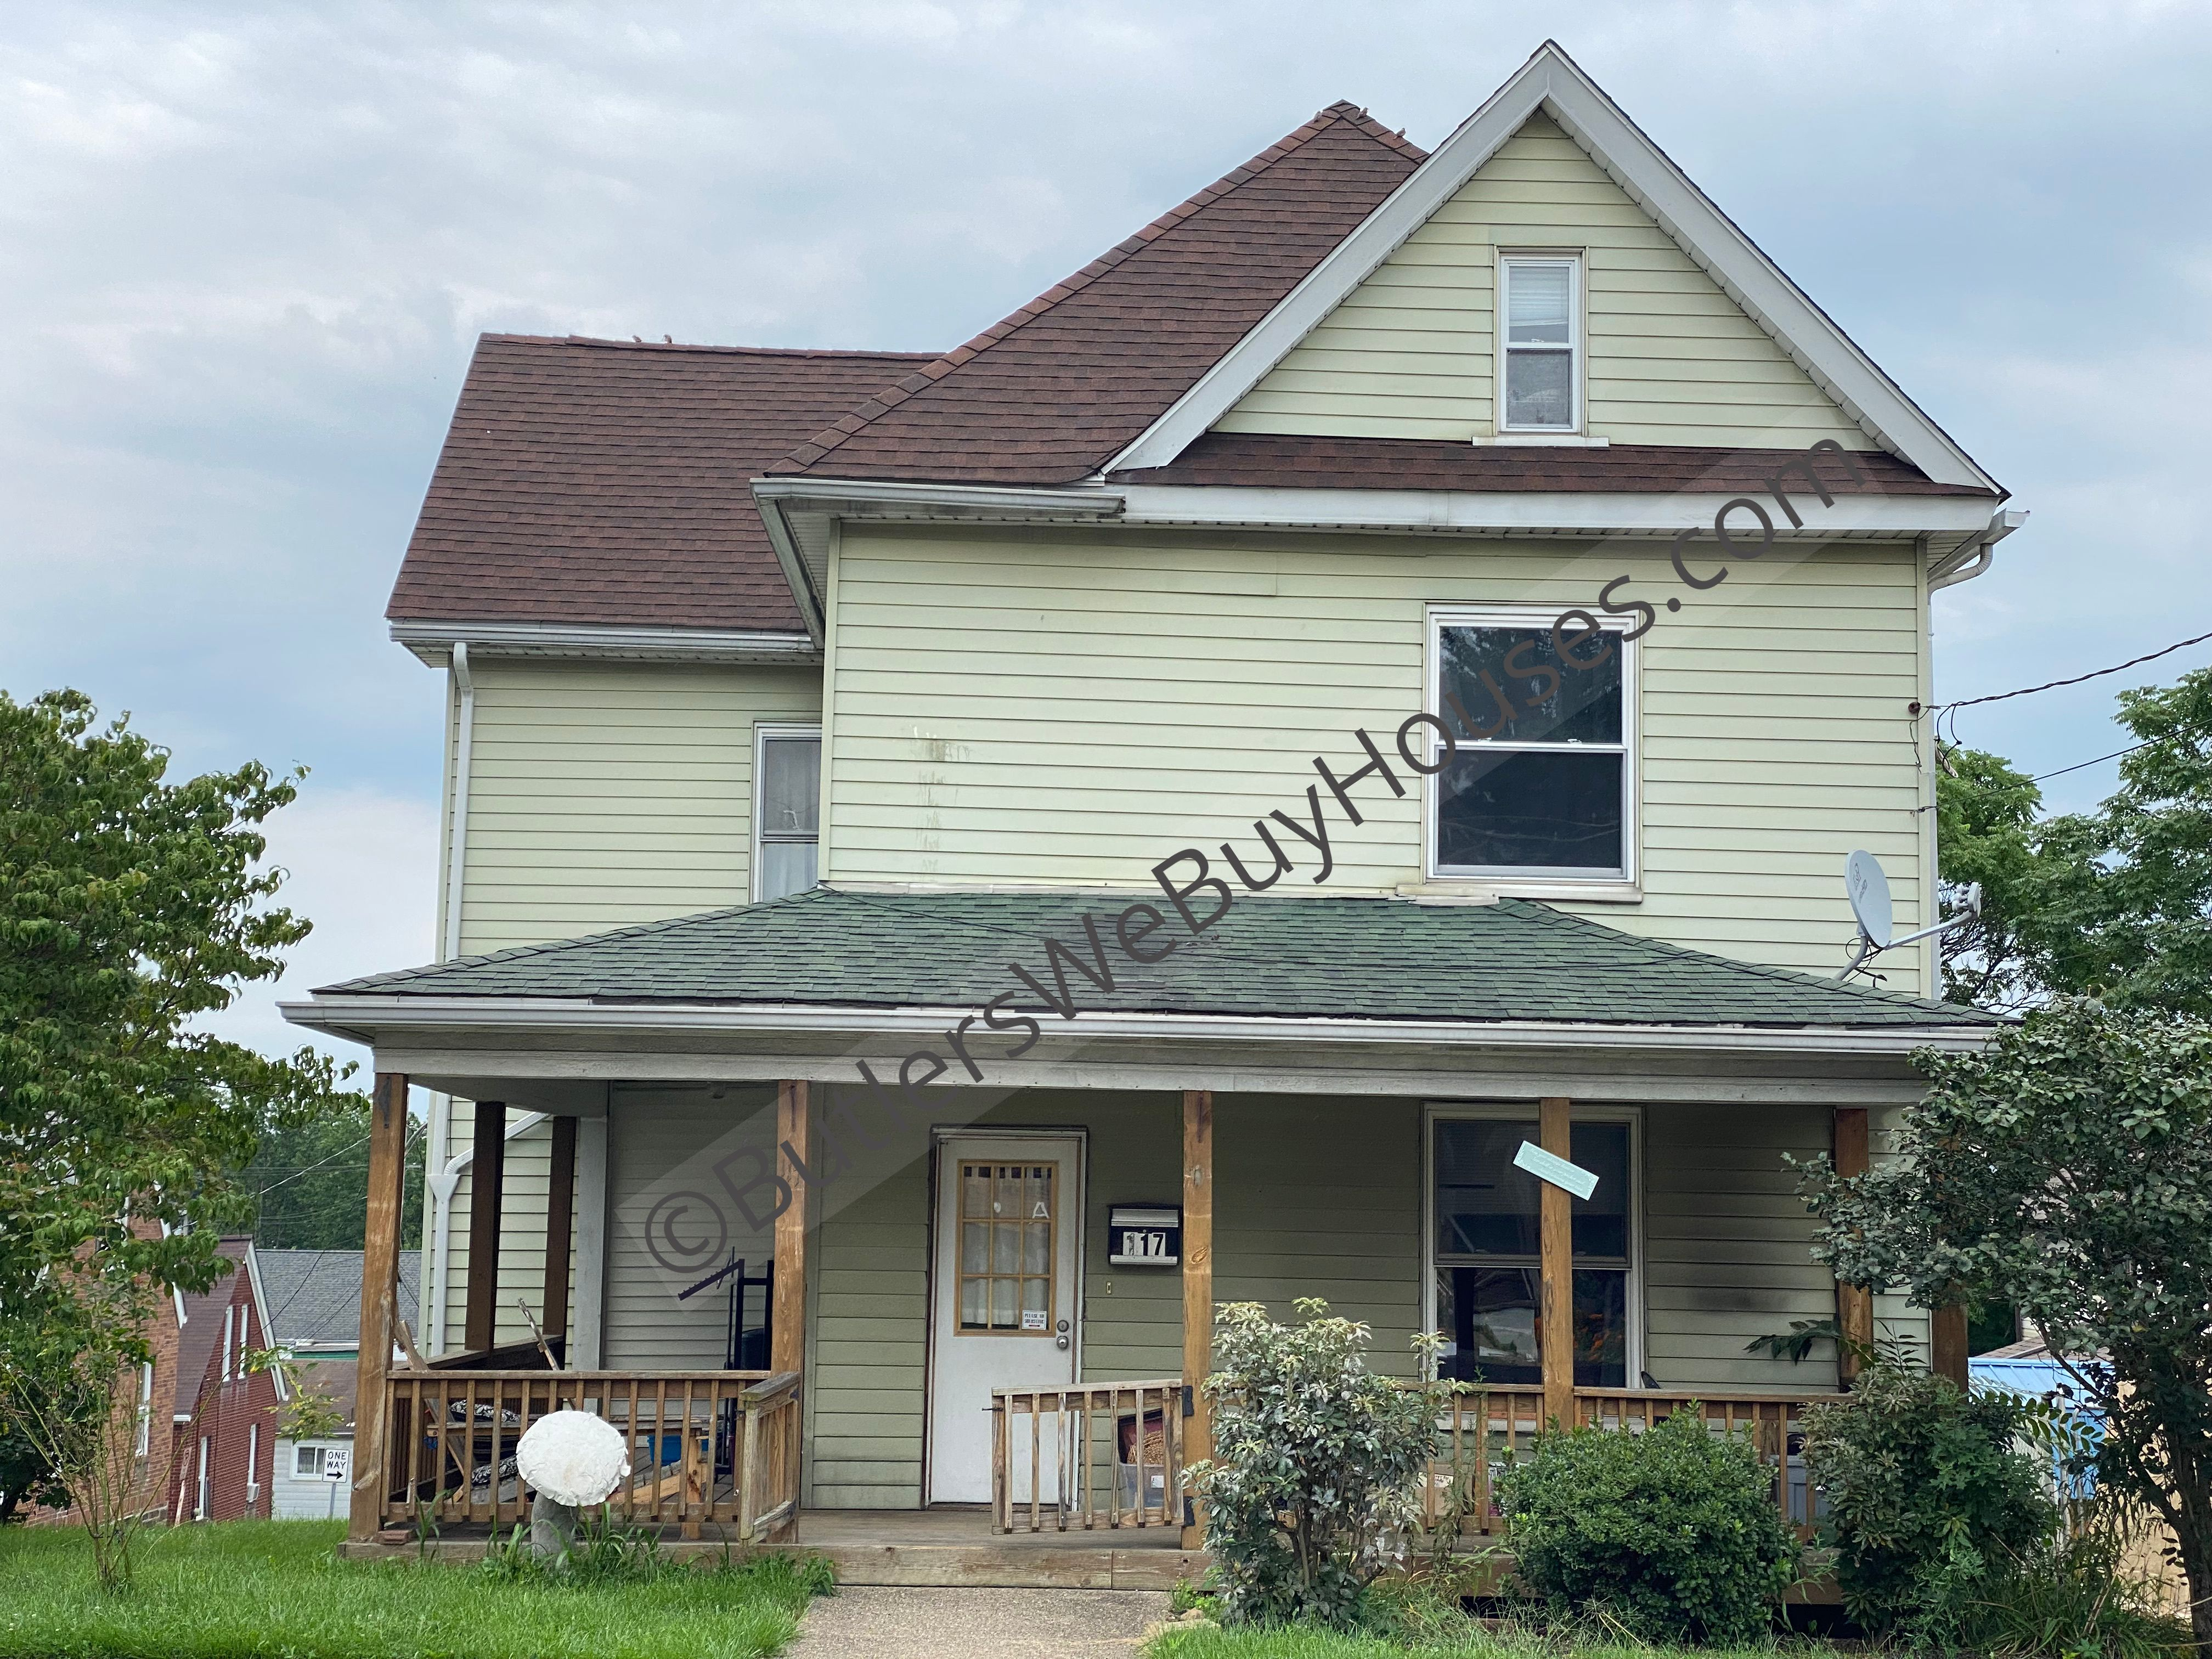 117 5th Ave, Butler, PA